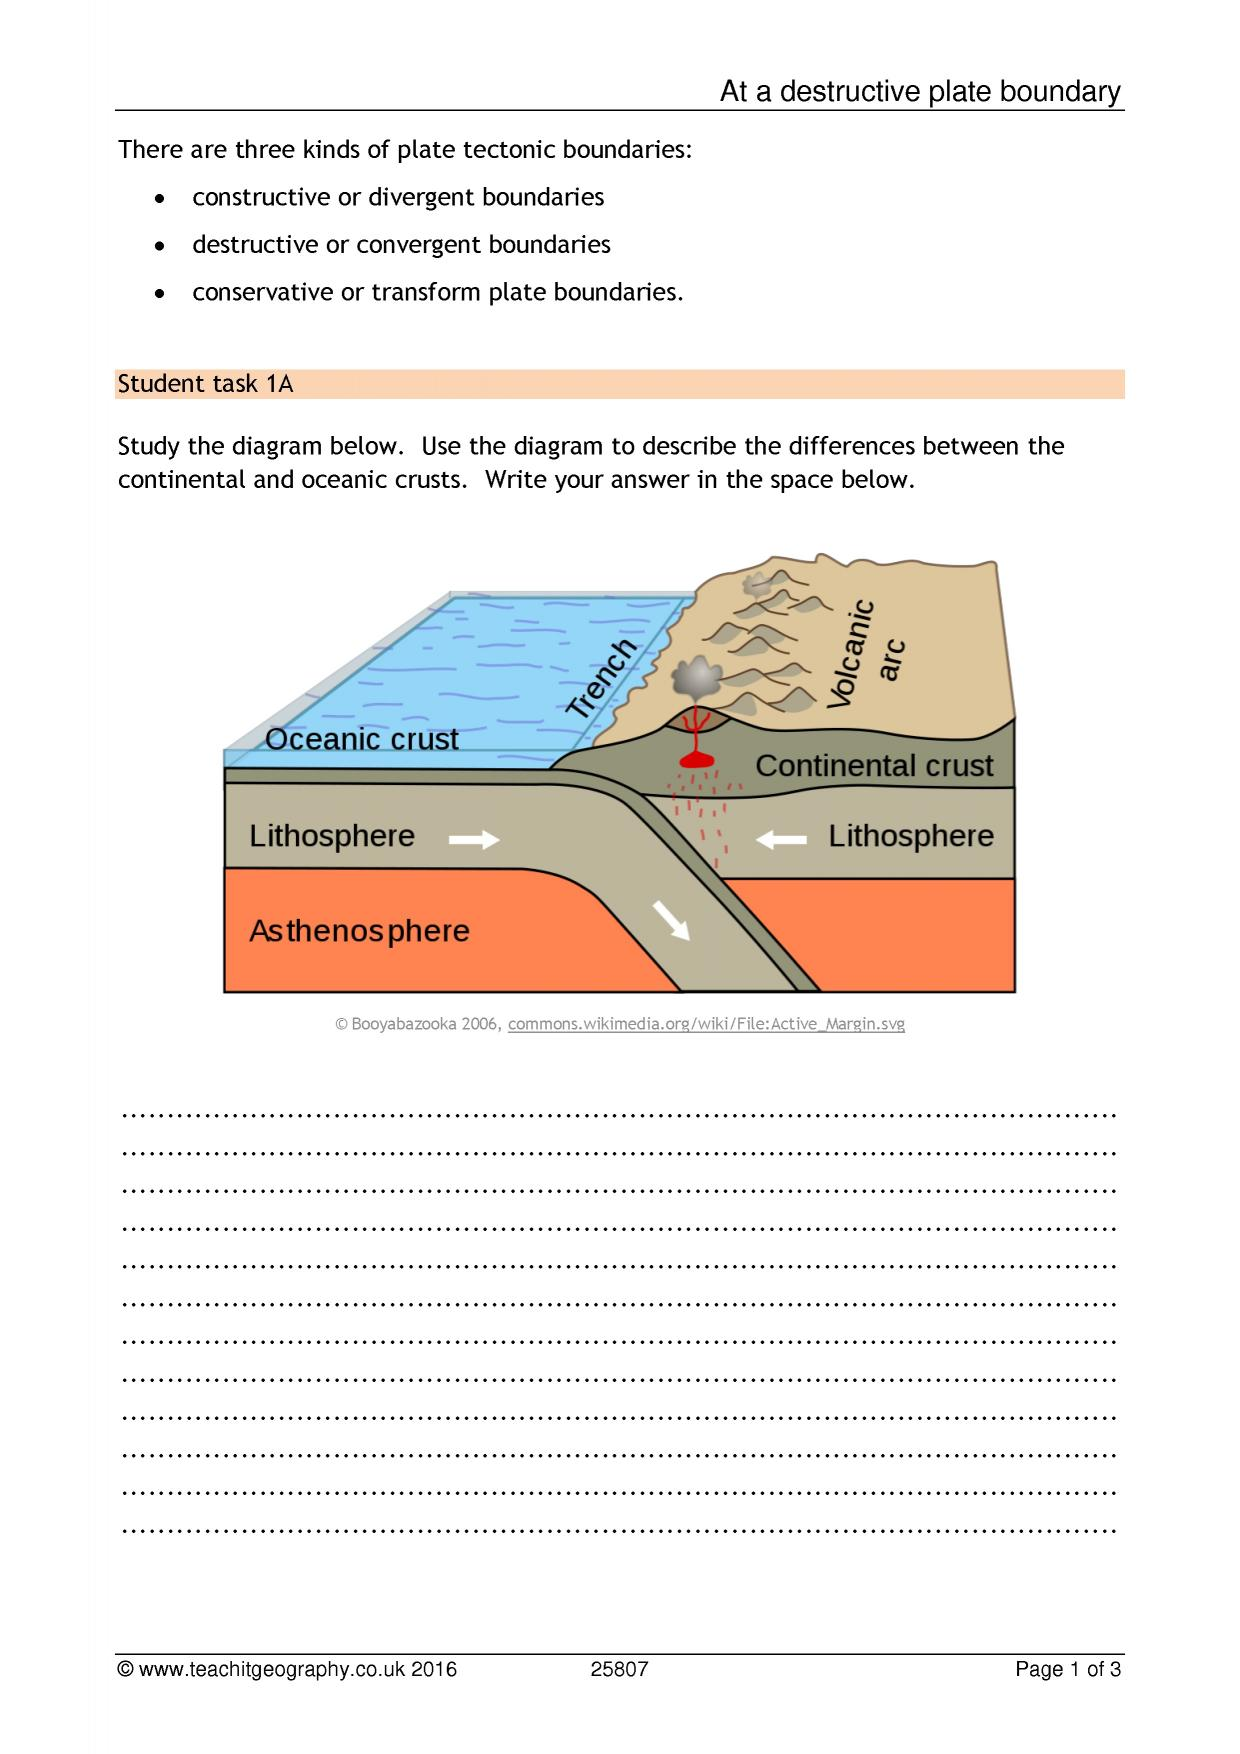 At A Destructive Plate Boundary